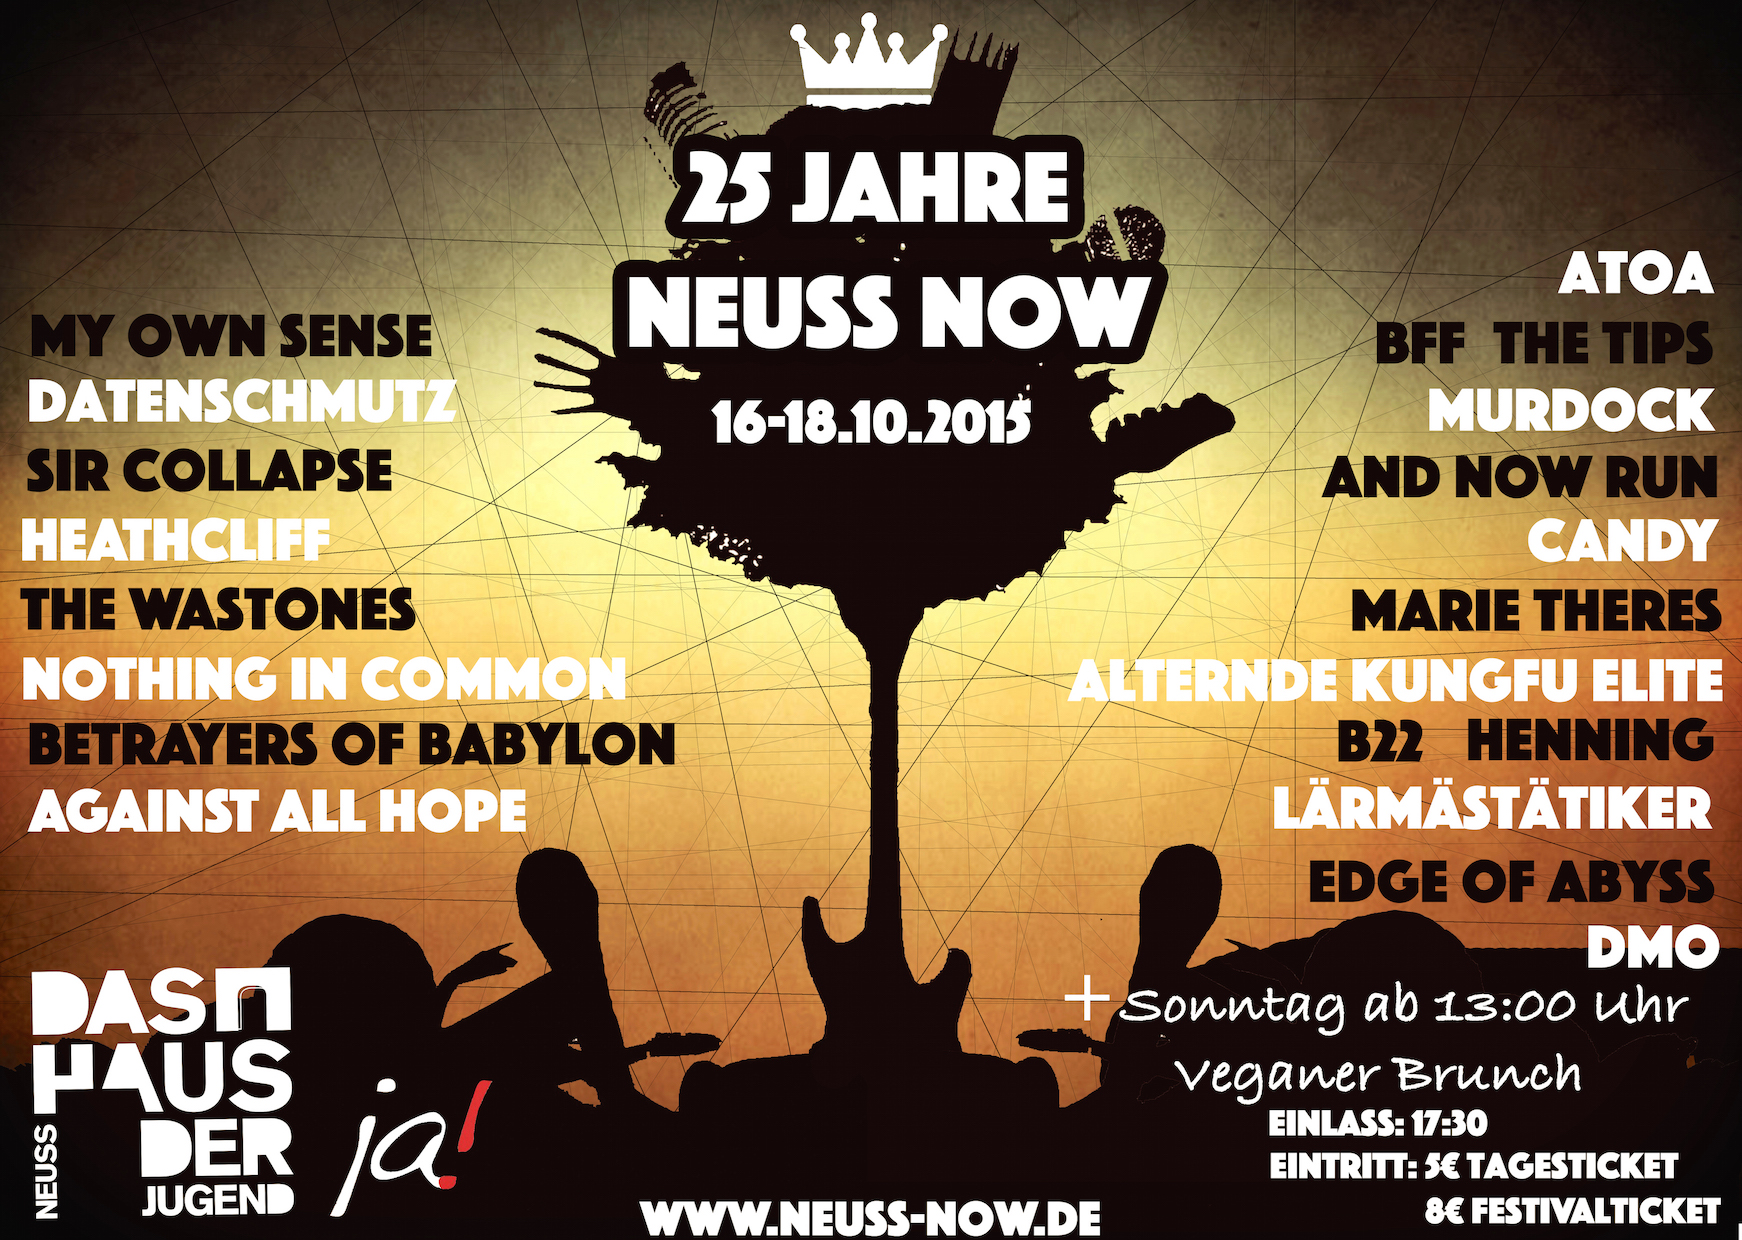 NEUSS NOW 2015 flyer